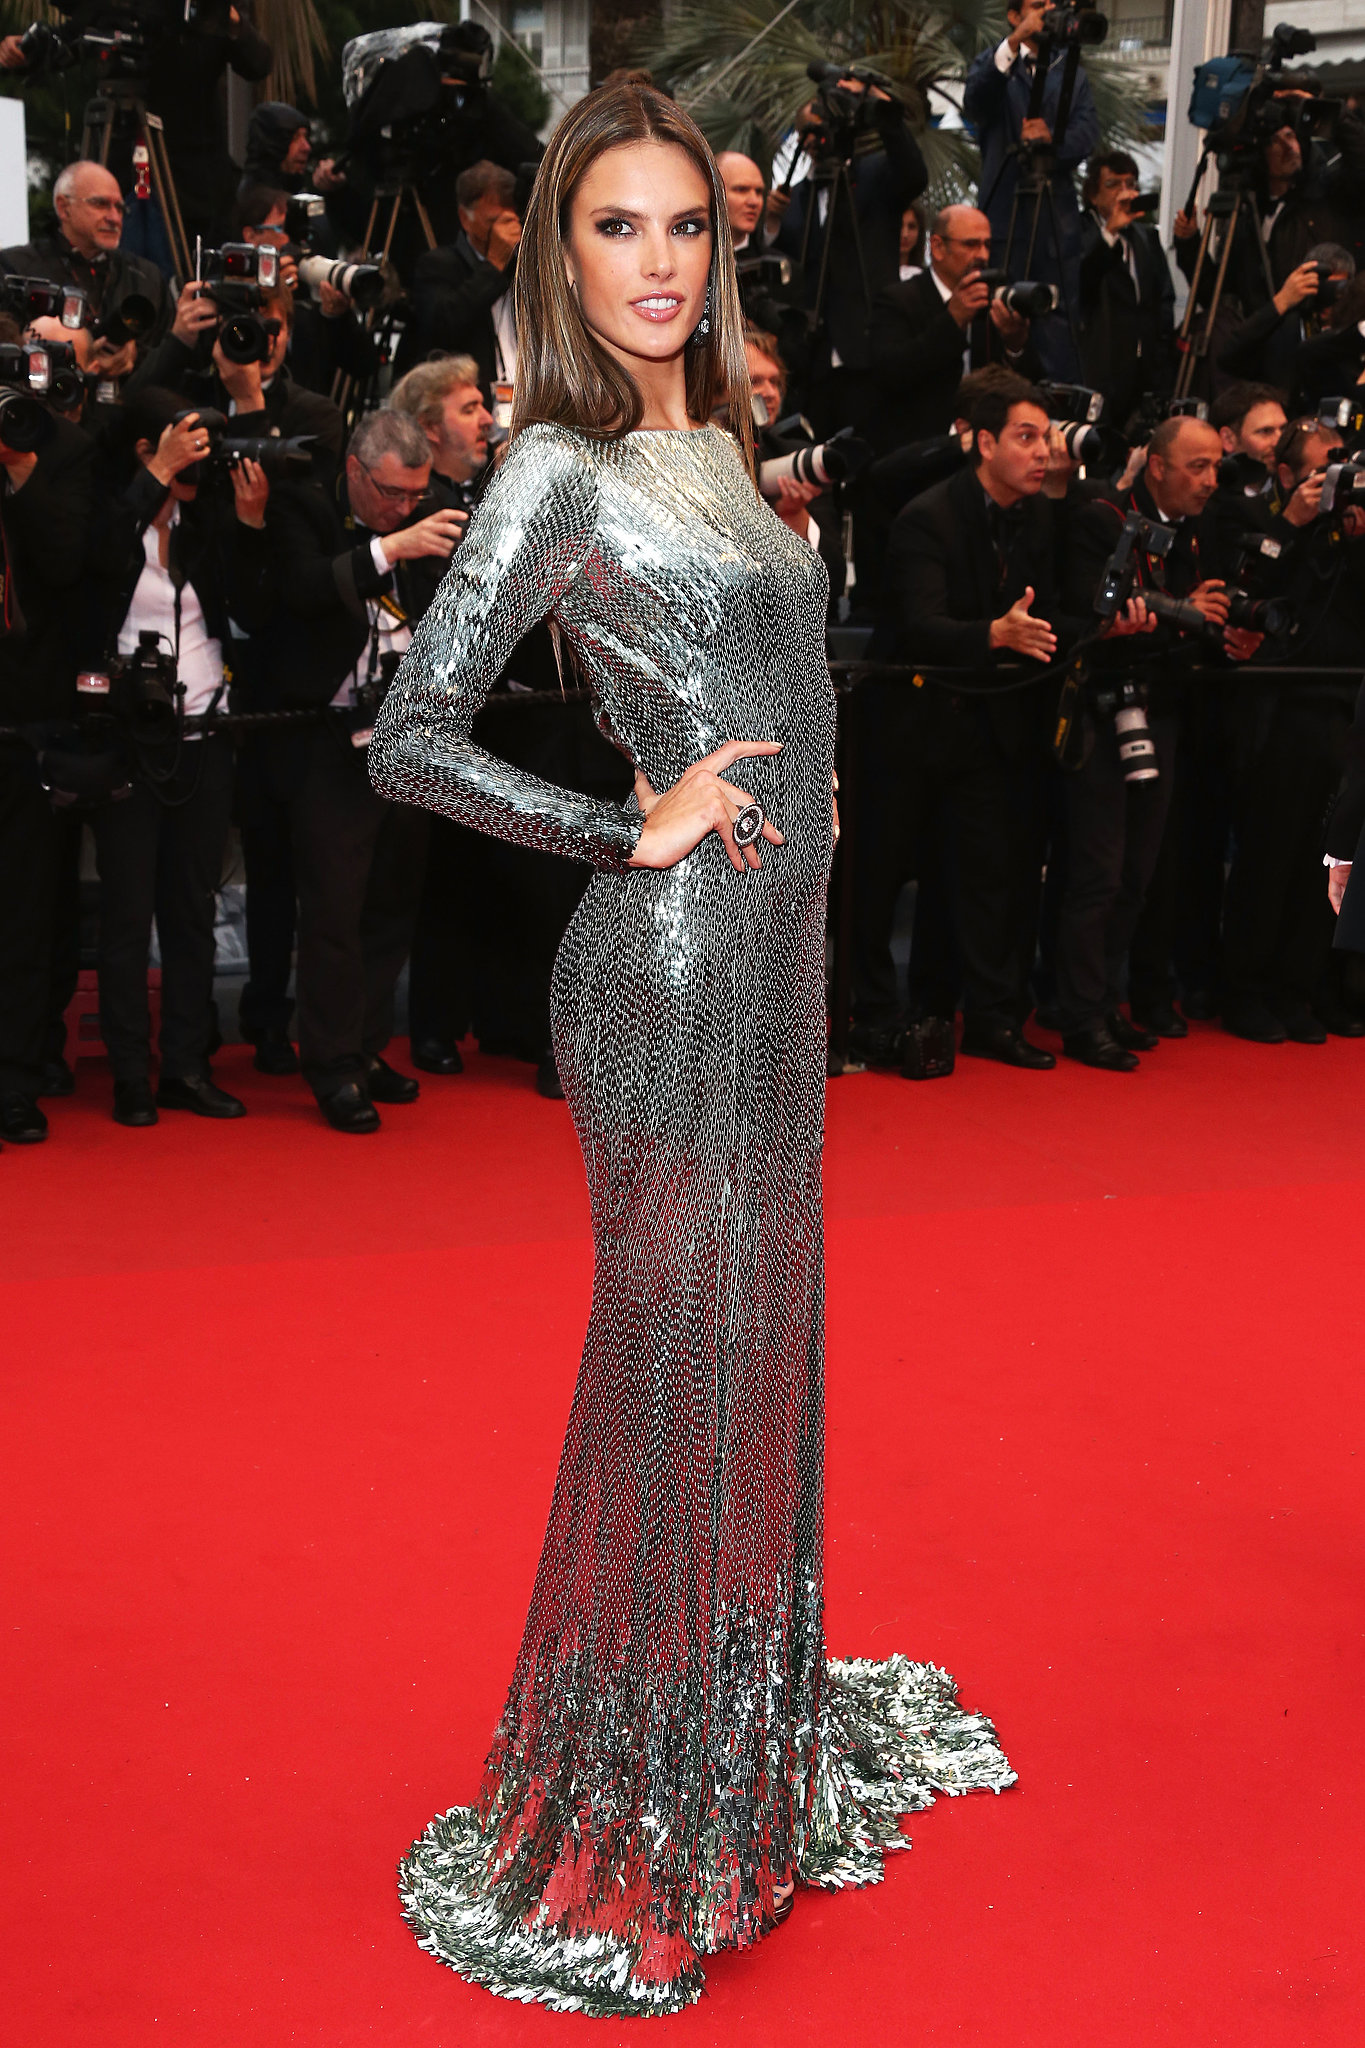 Alessandra Ambrosio donned a metallic sequined number for Wednesday's All Is Lost premiere in Cannes.